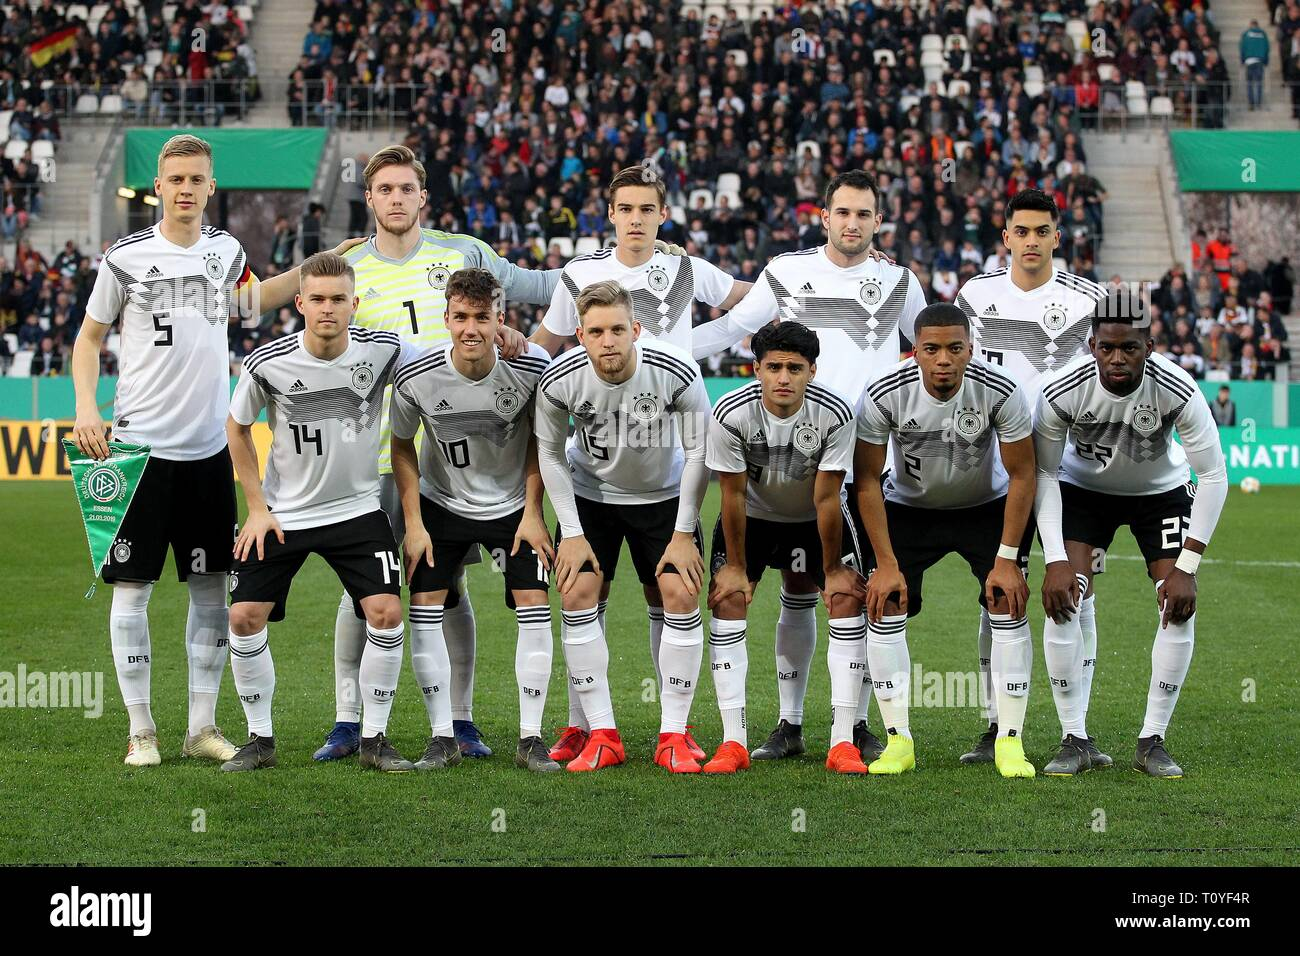 Teamfoto High Resolution Stock Photography And Images Alamy